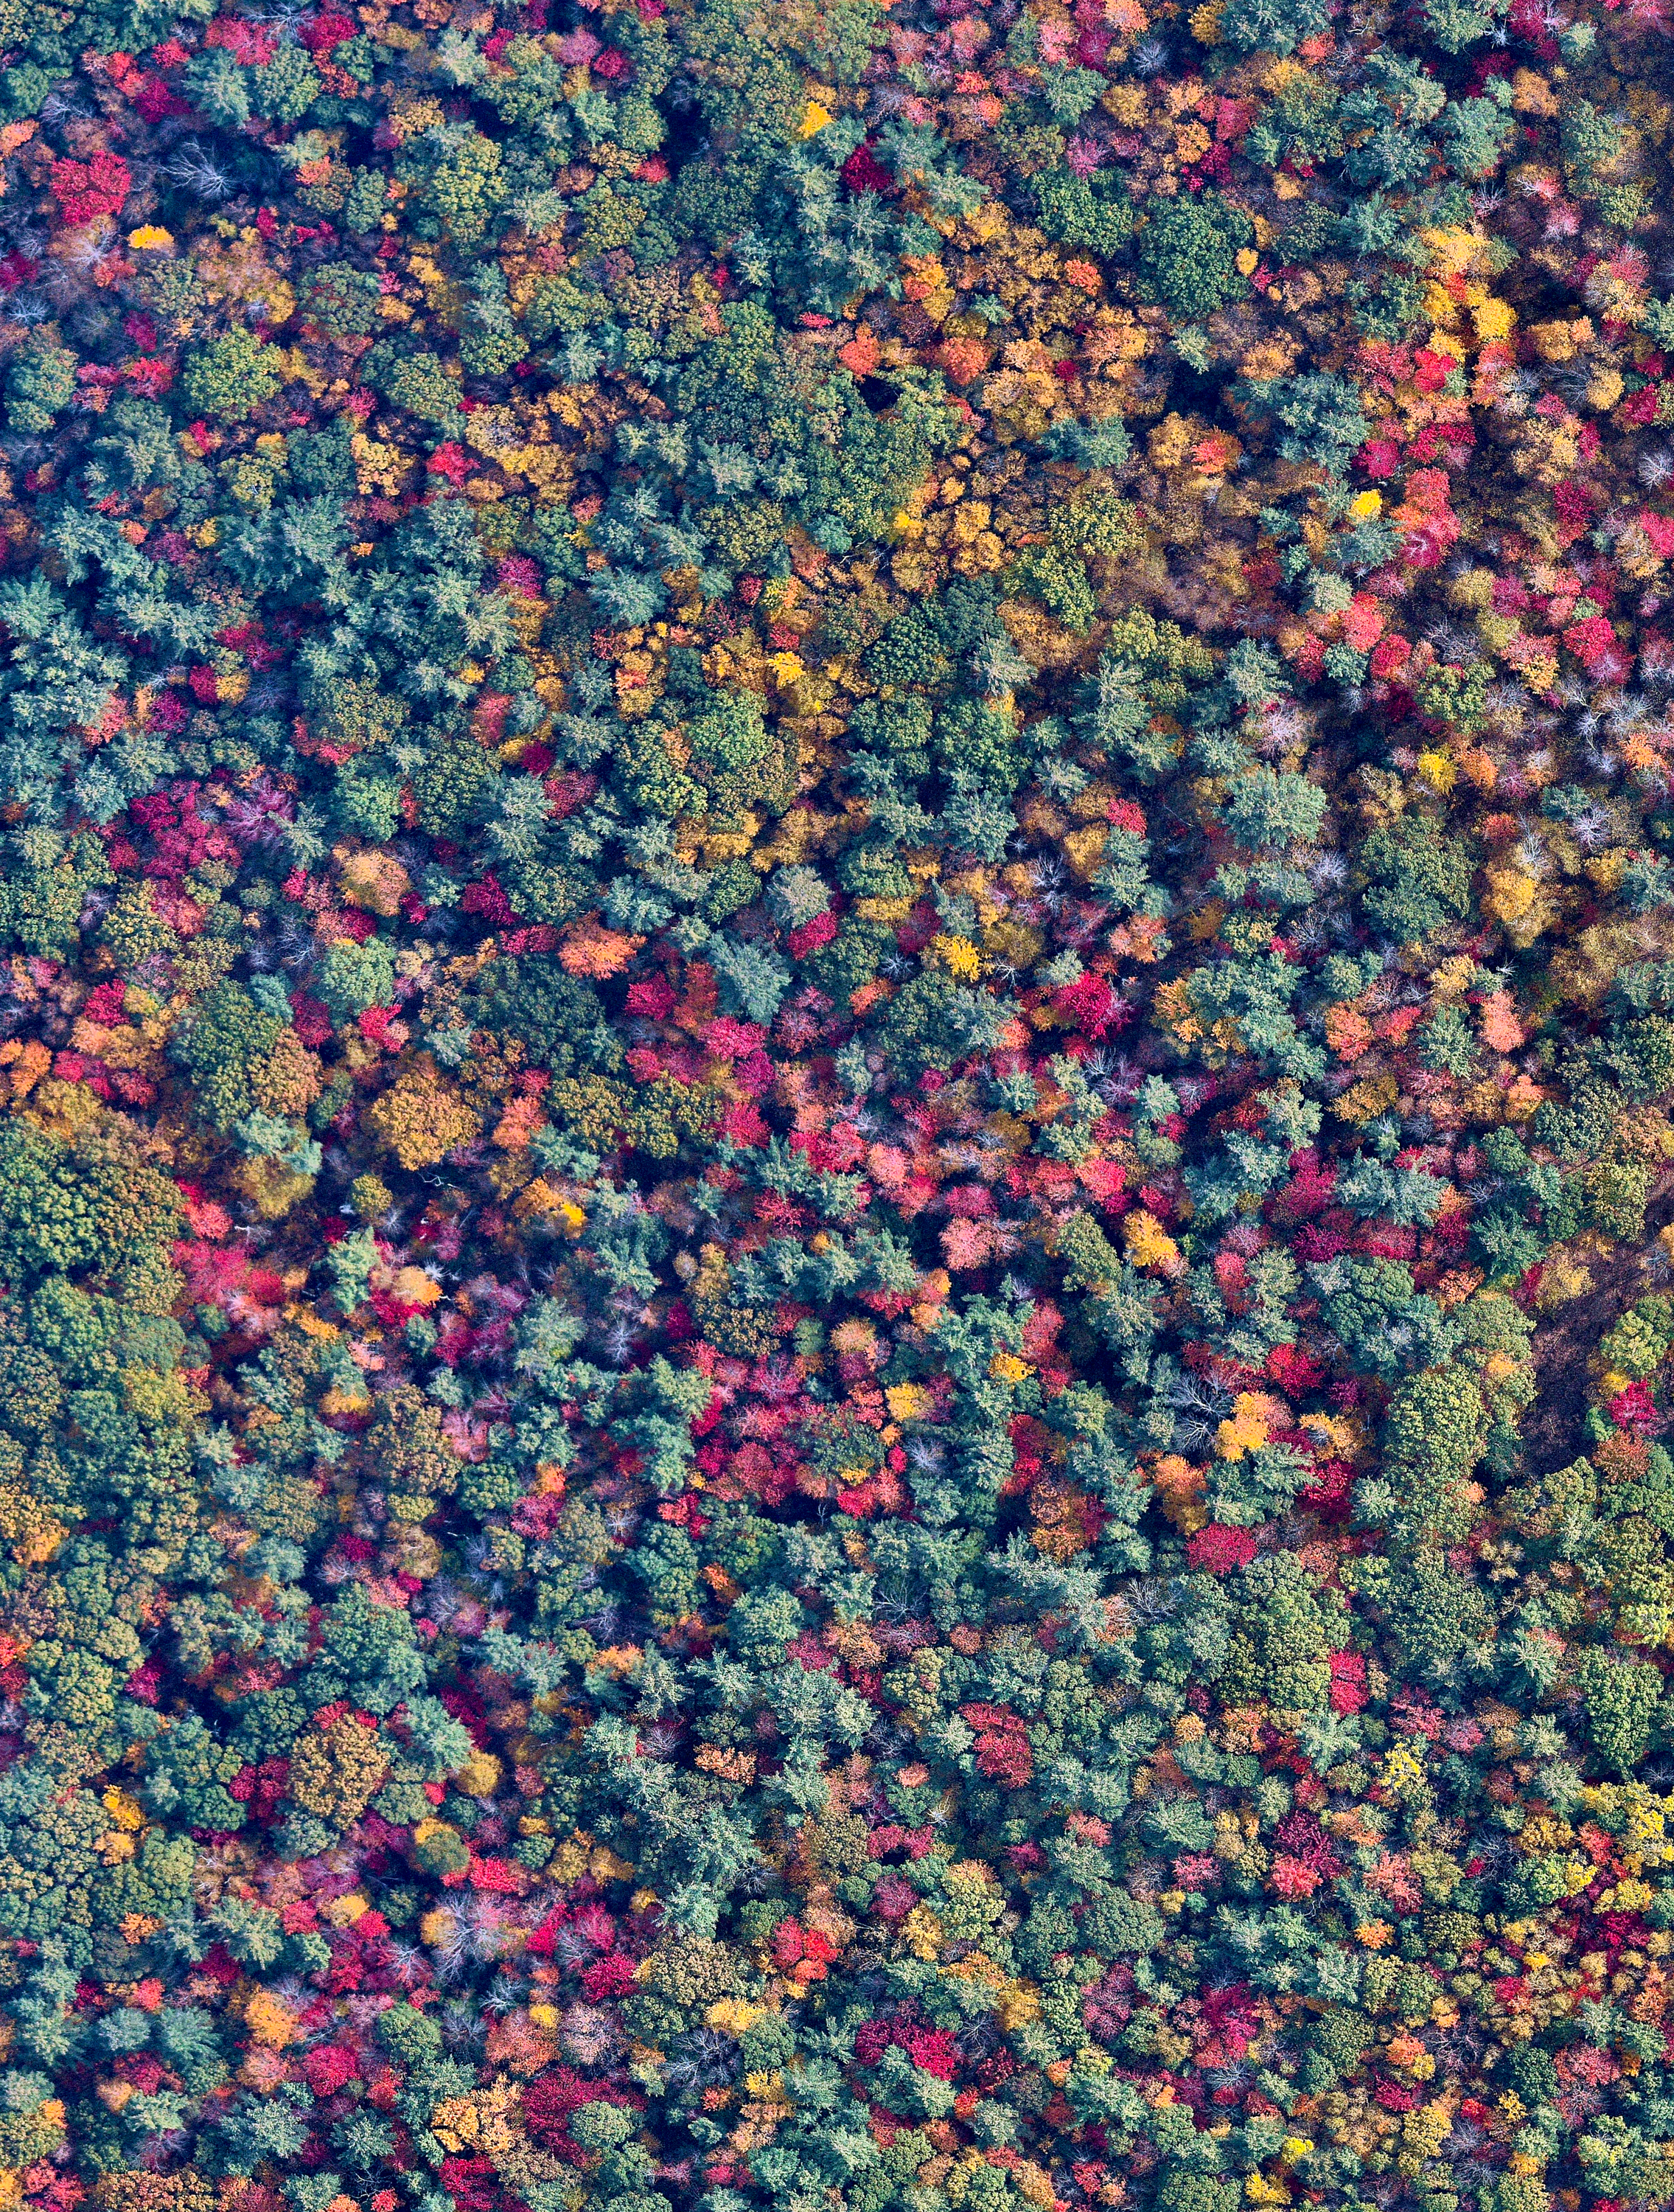 """Check out this stunning shot that we just added to our Printshop of fall foliage in New Hampshire! Head over to our  Printshop  today to see what's available and use the discount code """"FALL20"""" for 20% off any order this month. This Overview captures an incredible blanket of tones in the trees of Bow, New Hampshire. With the arrival of colder temperatures, leaves begin to change their colors, creating this marvelous view from above.  43°07'39.5""""N, 71°32'36.5""""W  Source imagery: Nearmap"""